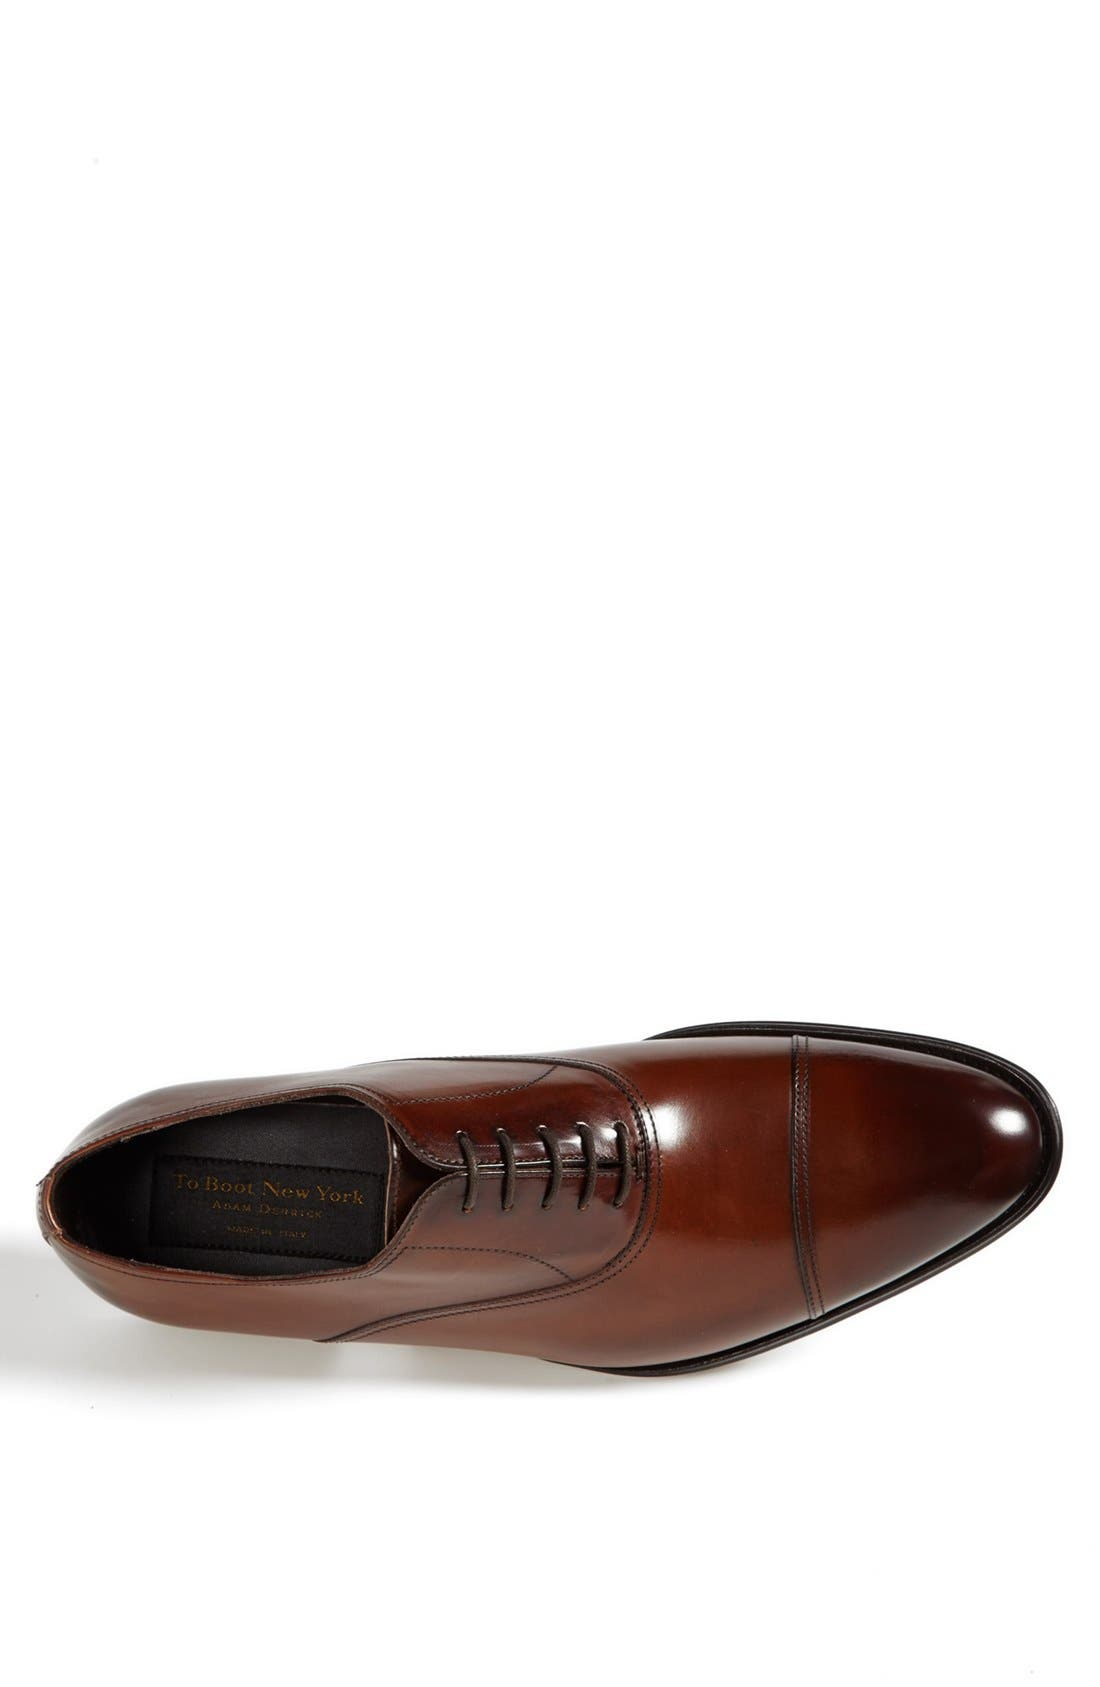 Alternate Image 3  - To Boot New York Brandon Cap Toe Oxford (Nordstrom Exclusive) (Men)